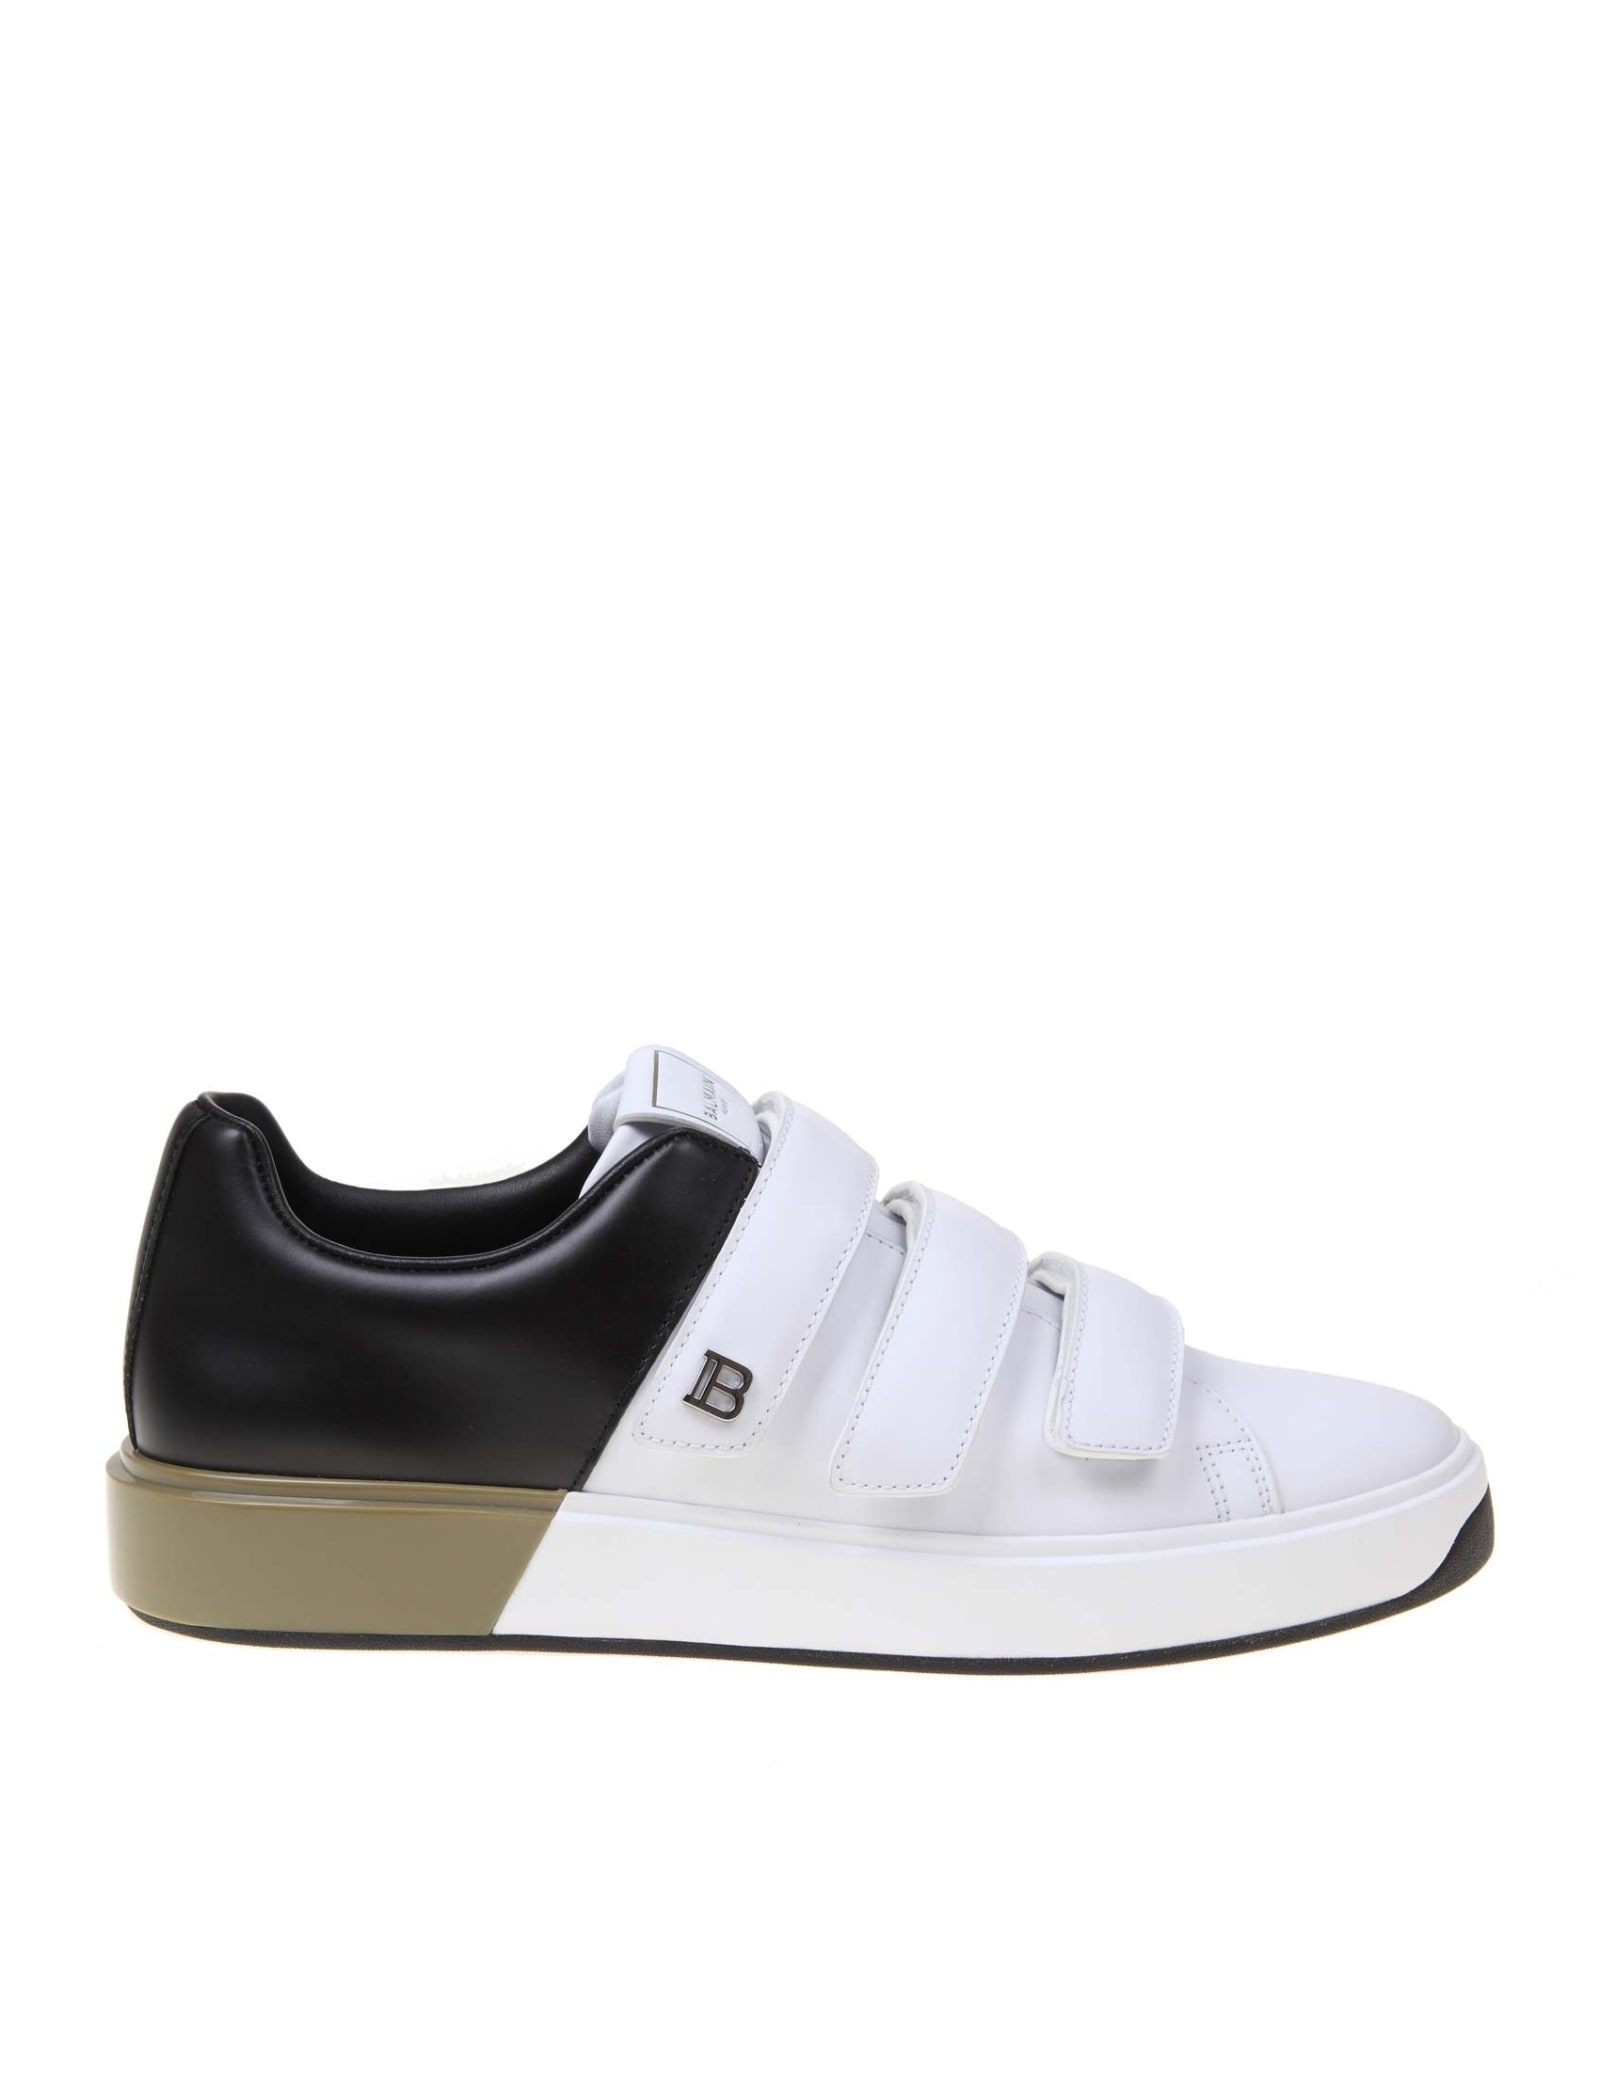 Balmain SNEAKER B COURT IN WHITE AND BLACK LEATHER